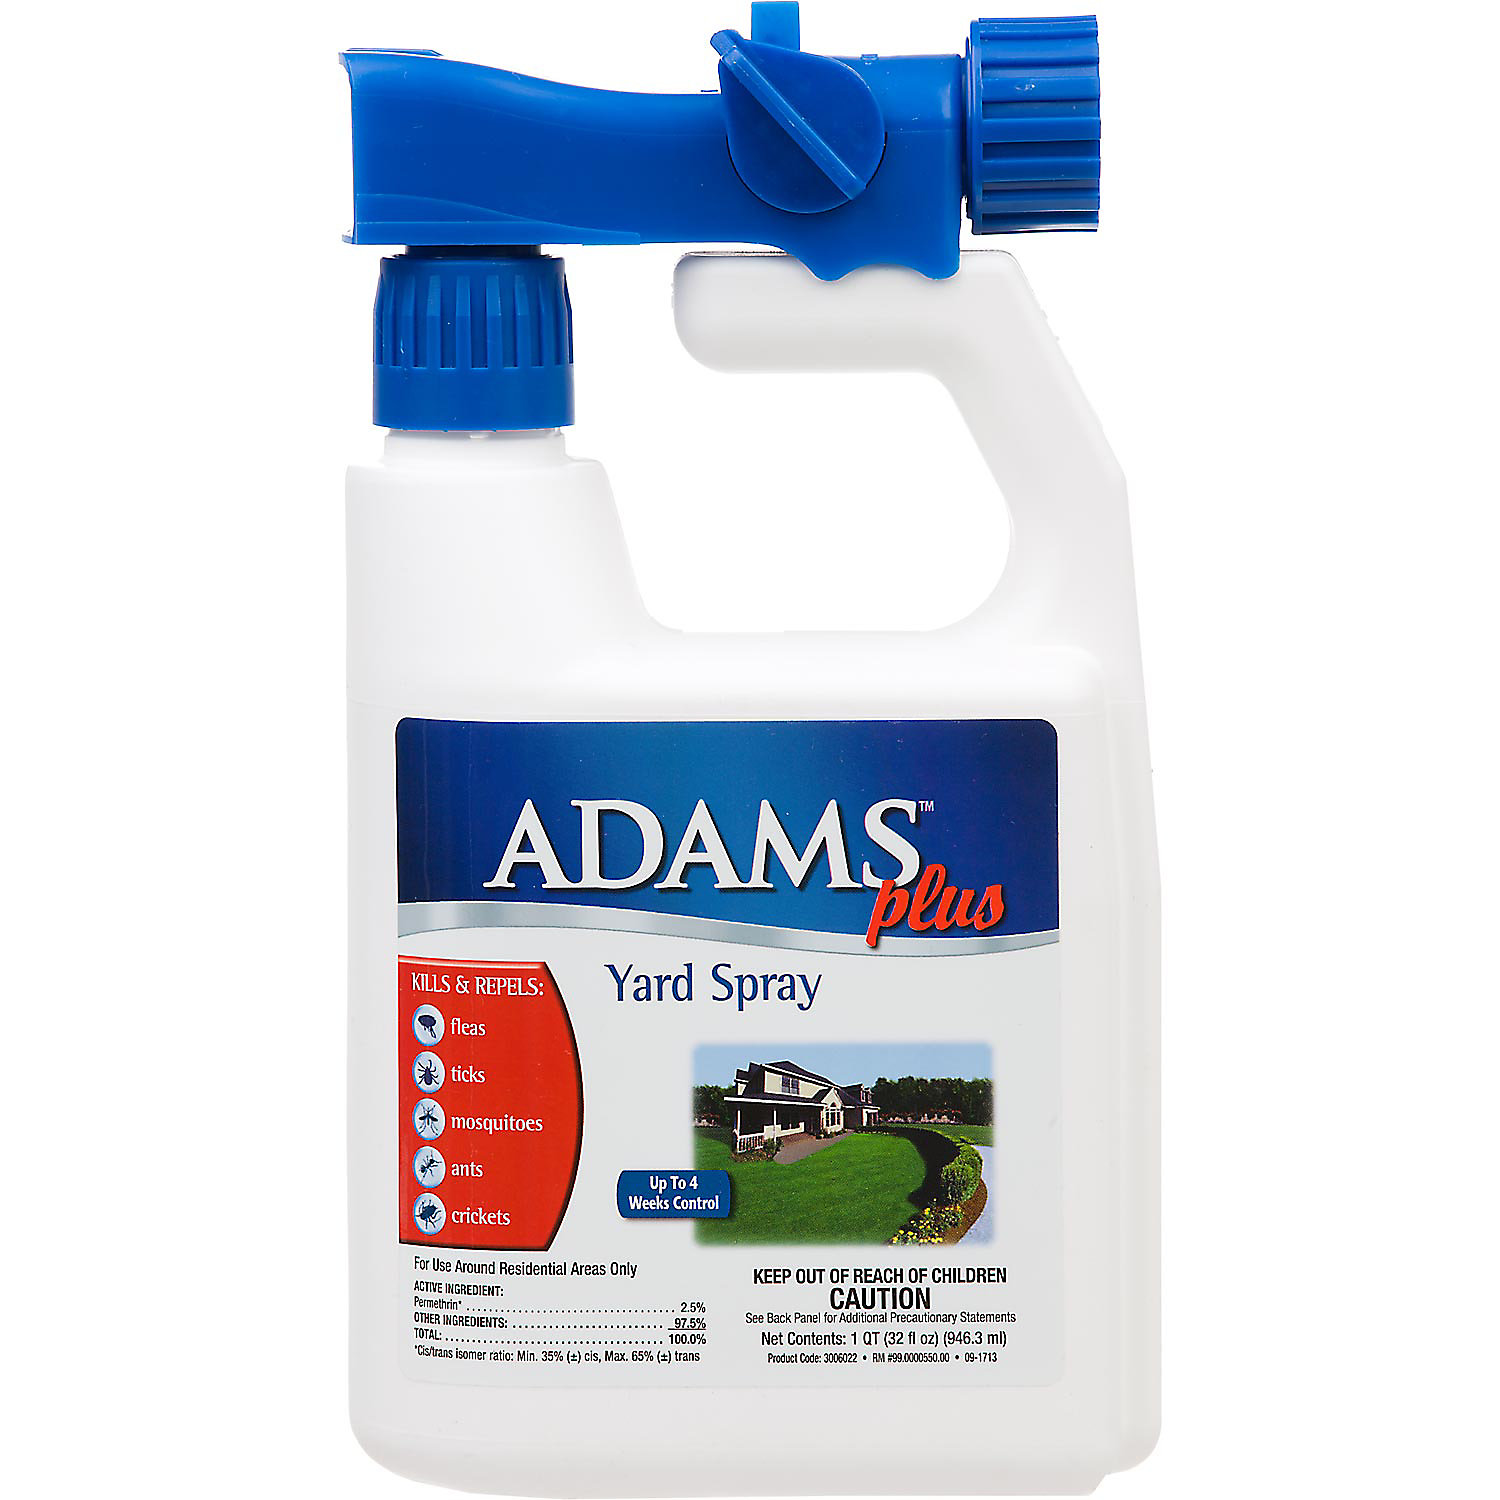 Adams Plus Flea Tick Yard Spray 32 Oz.